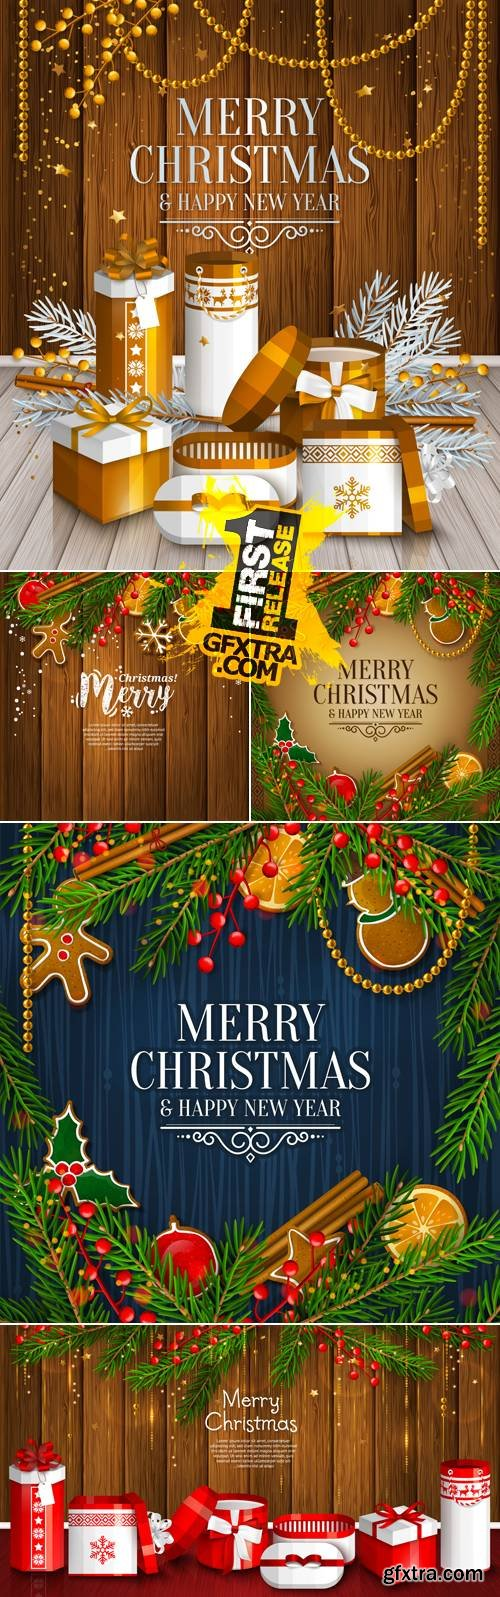 Christmas & New Year 2017 Cards Vector